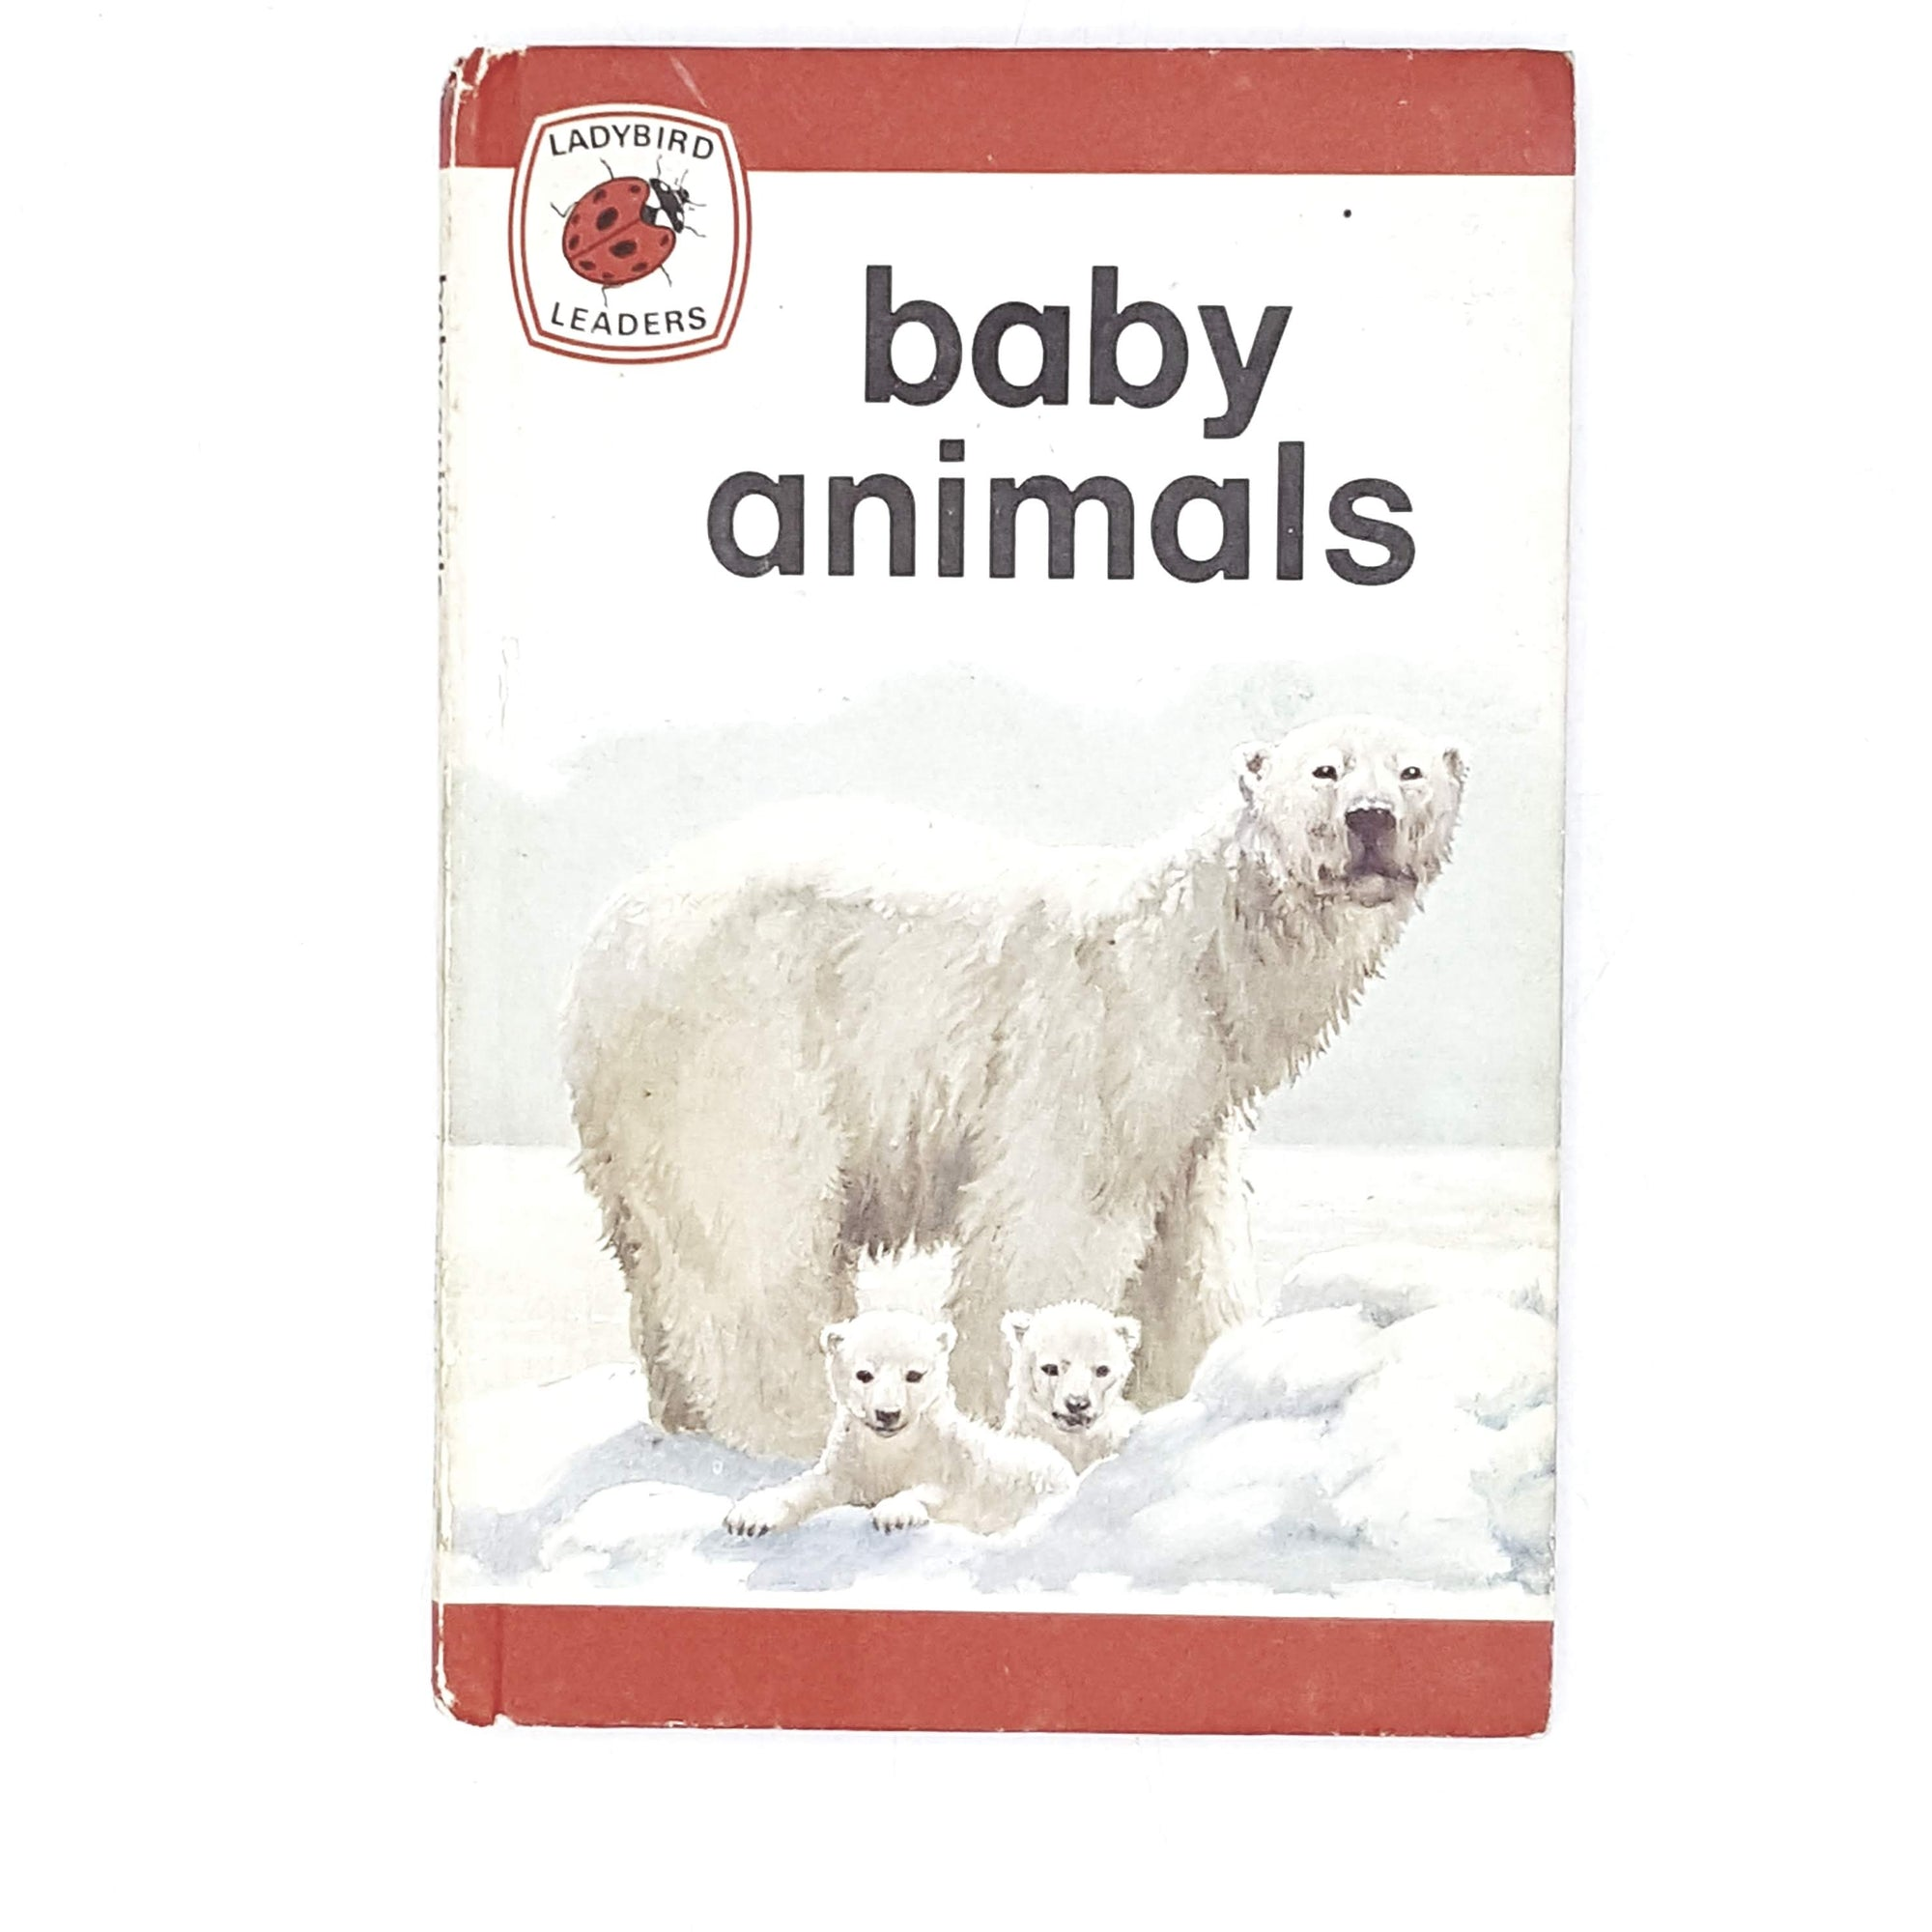 Ladybird Leaders: Baby Animals 1974